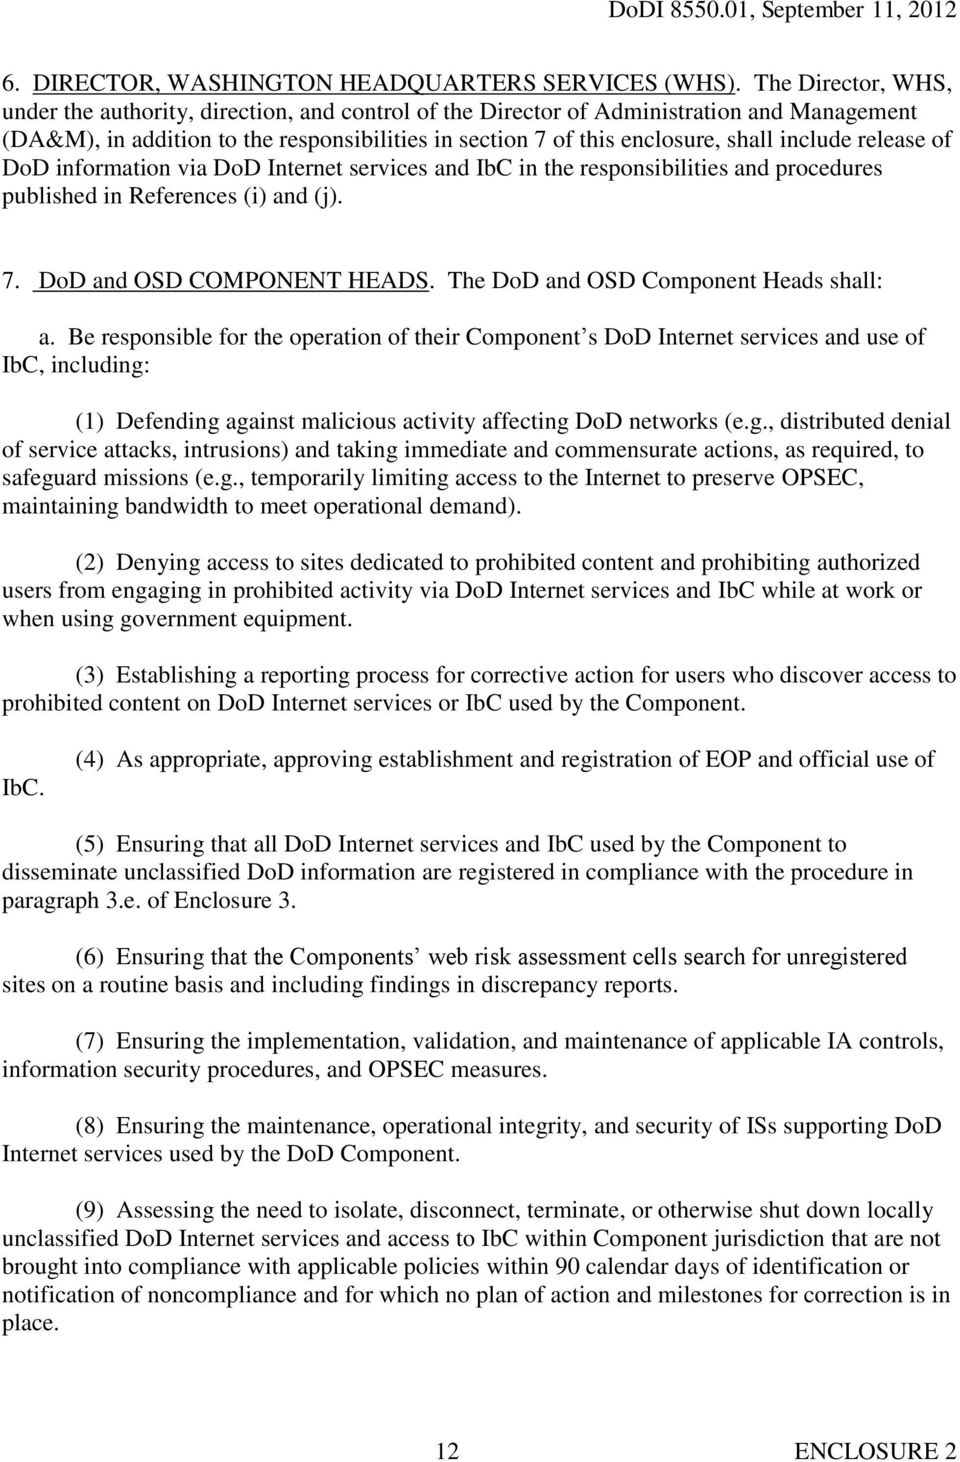 include release of DoD information via DoD Internet services and IbC in the responsibilities and procedures published in References (i) and (j). 7. DoD and OSD COMPONENT HEADS.